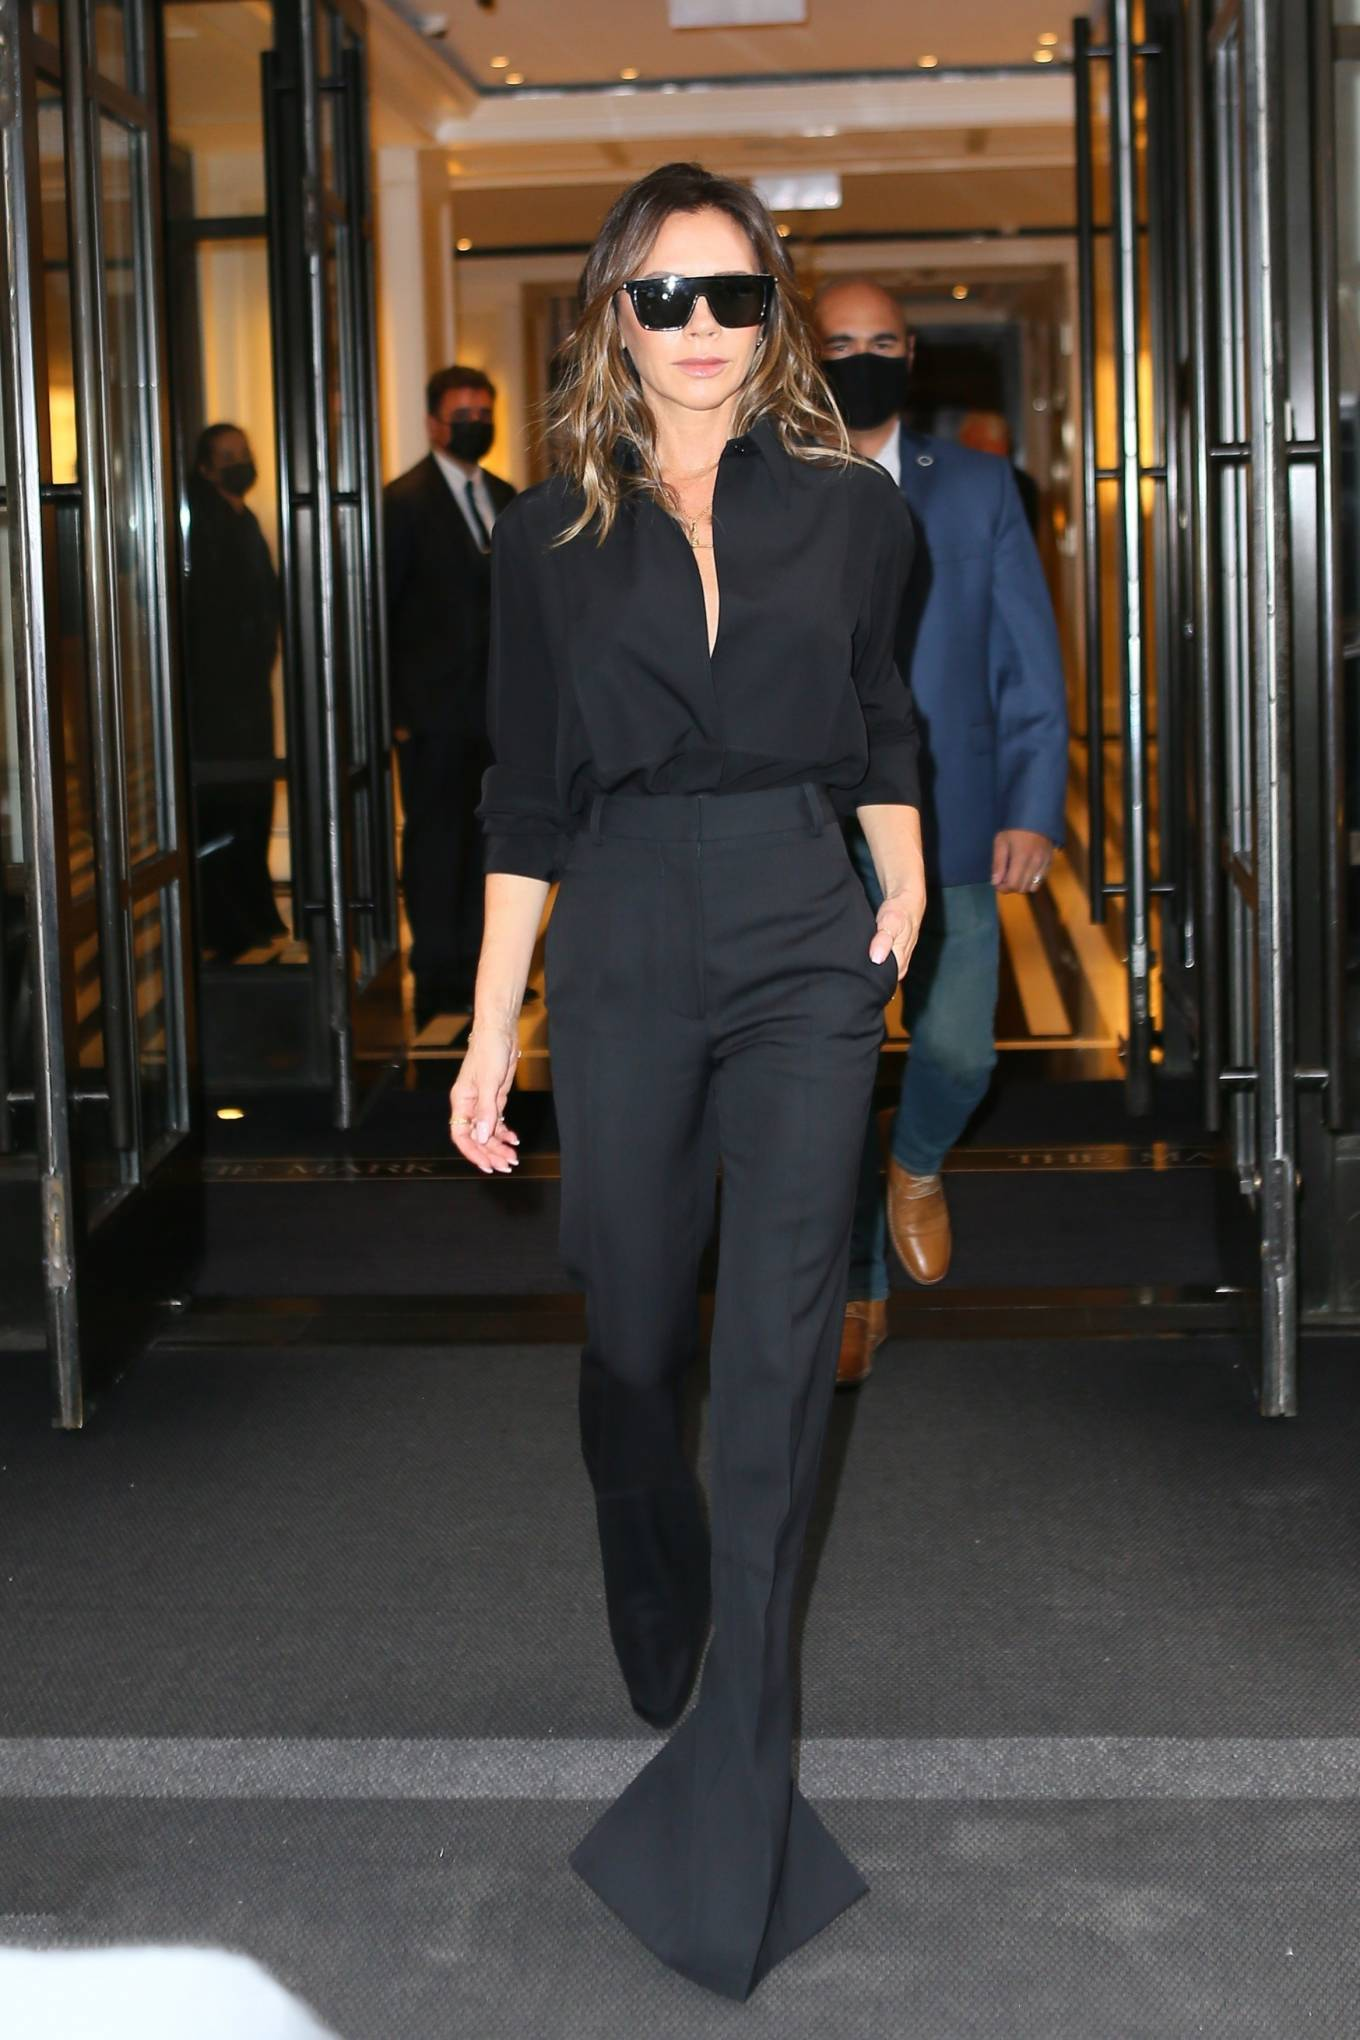 Victoria Beckham - In all black seen while exiting her hotel in New York